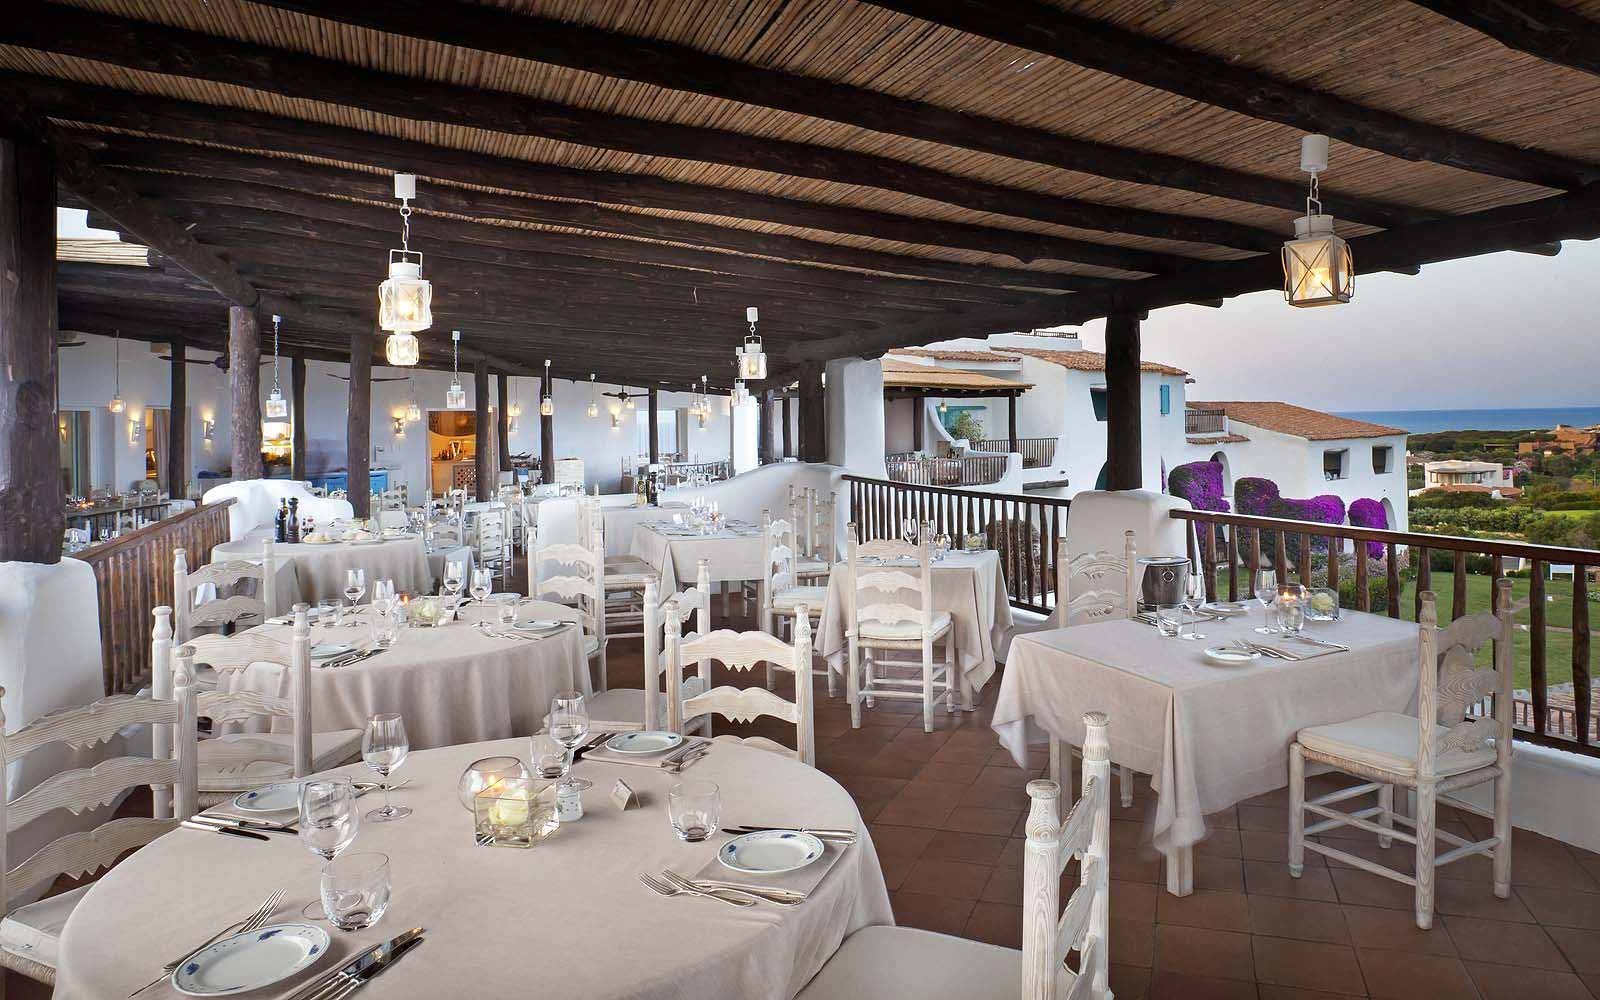 Romazzino Restaurant at the Hotel Romazzino